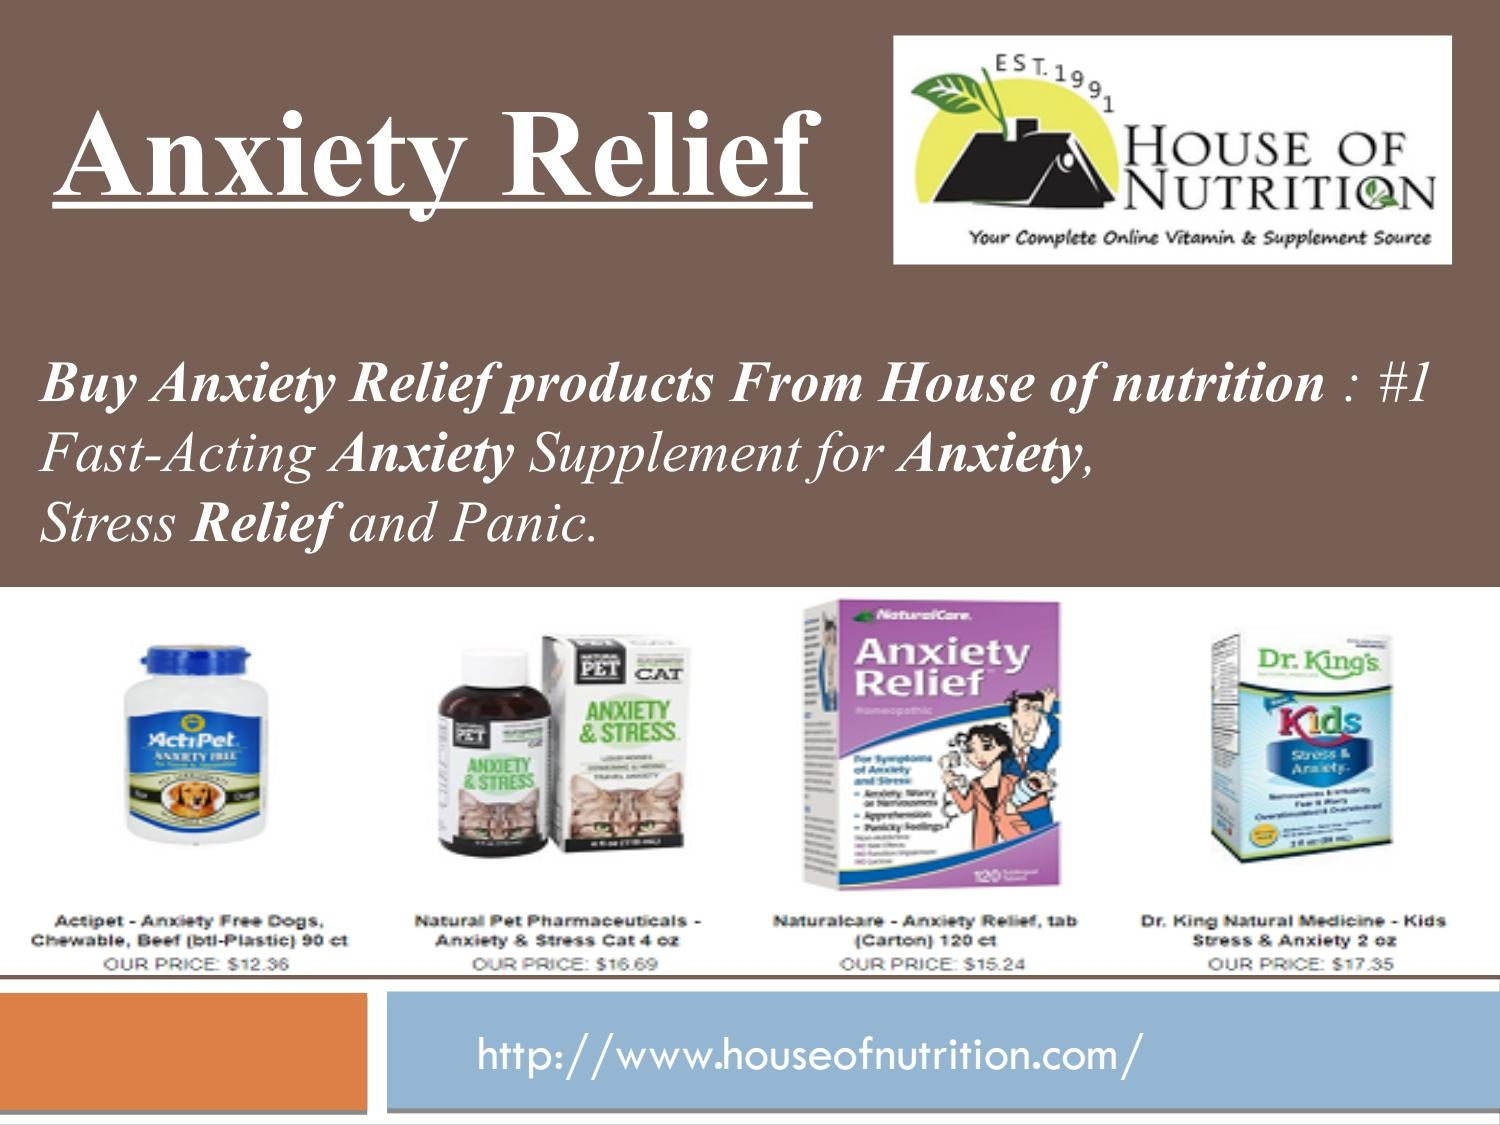 Anxiety relief by houseofnutrition - issuu